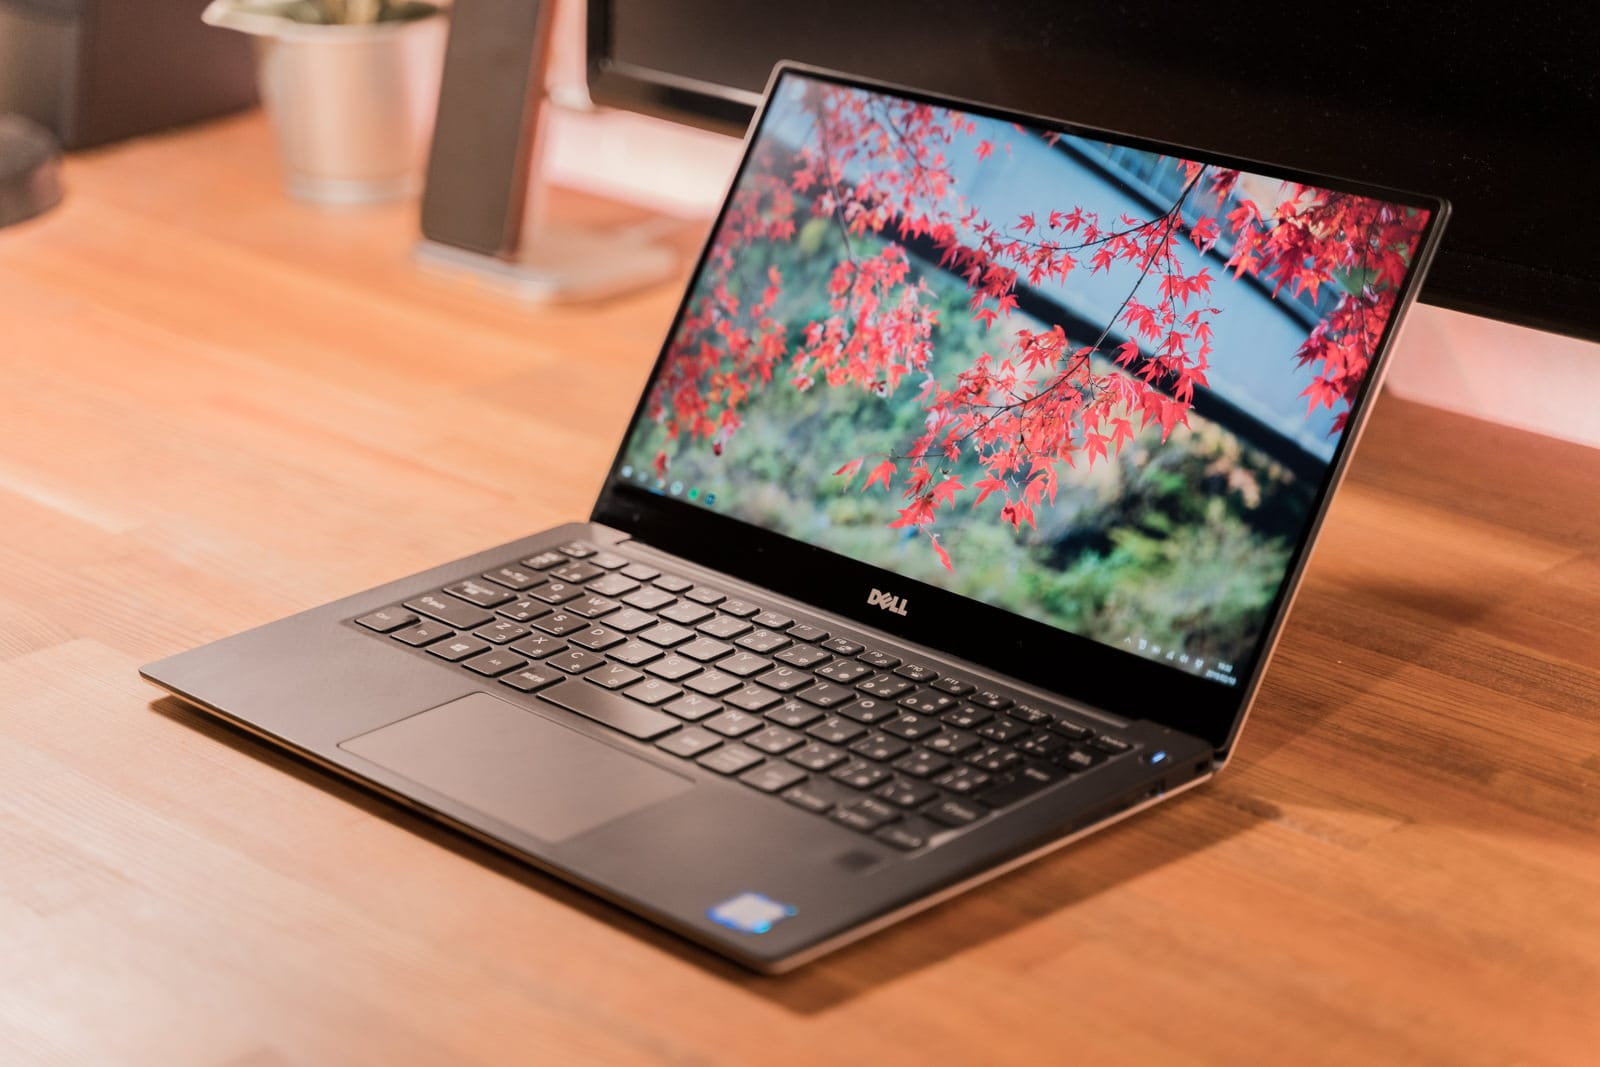 xps13-review-1-1.jpg